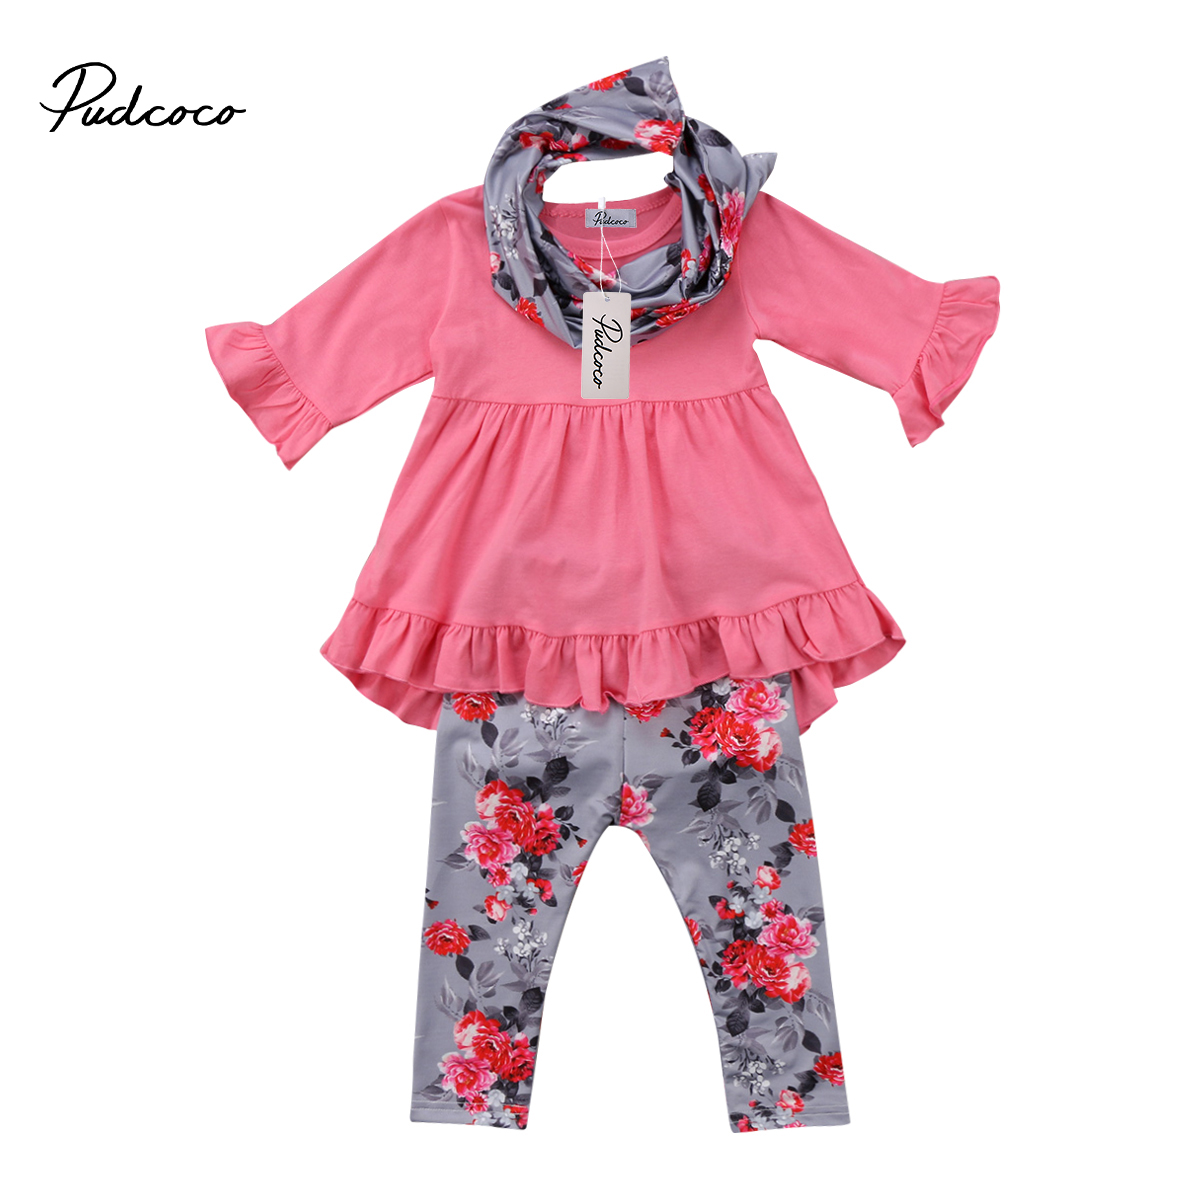 Pretty Toddler Kids Baby Girls Clothes Long Sleeve Ruffle T-shirt Top+Flower Pants Leggings Scarf Outfits 3pcs Winter Clothing